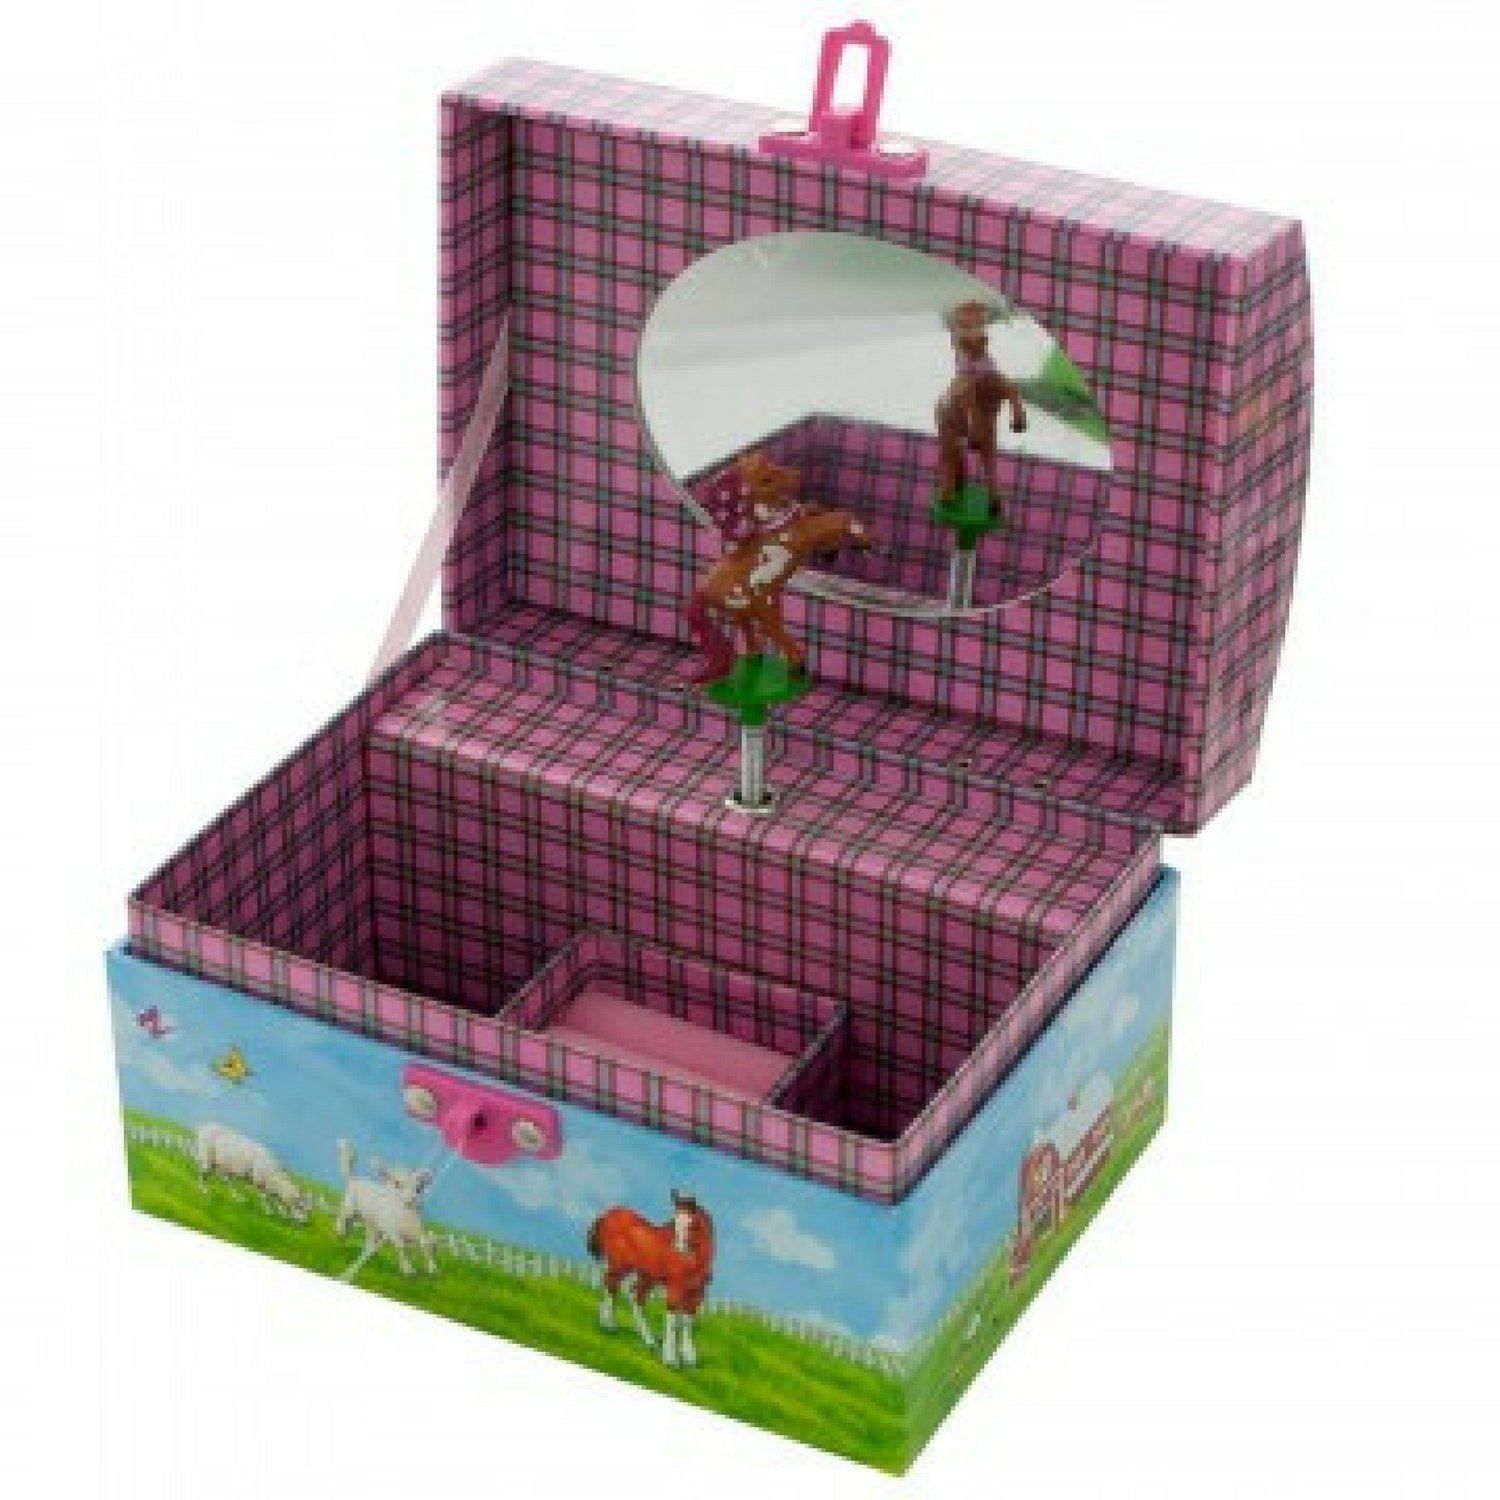 Horse Musical Jewelry Box for Girls - Beautiful Musical Necklace Box that comes with a Free Cool Gifts Yellow Necklace - The Perfect Girl Gifts for Cowgirls and Horse Lovers by BoomBoxHub (Image #1)